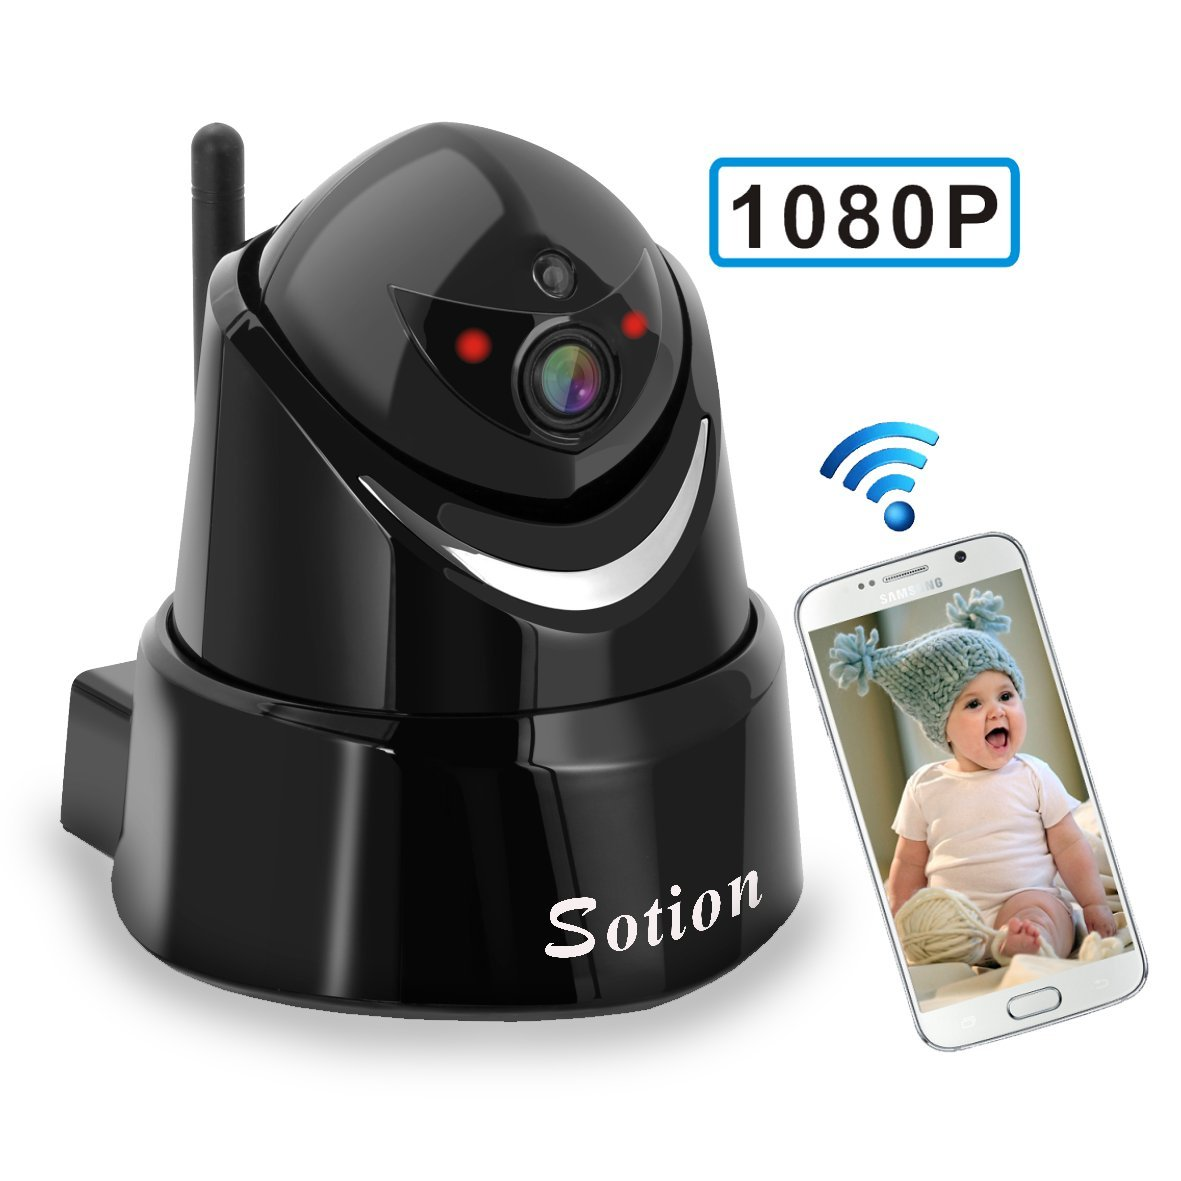 SOTION Full 1080P HD WiFi Internet Wireless Network IP Indoor Home Security Surveillance Video Camera System, Baby and Pet Monitor with Pan and Tilt, Two Way Audio & Night Vision Halan Inc SK04W-1080P